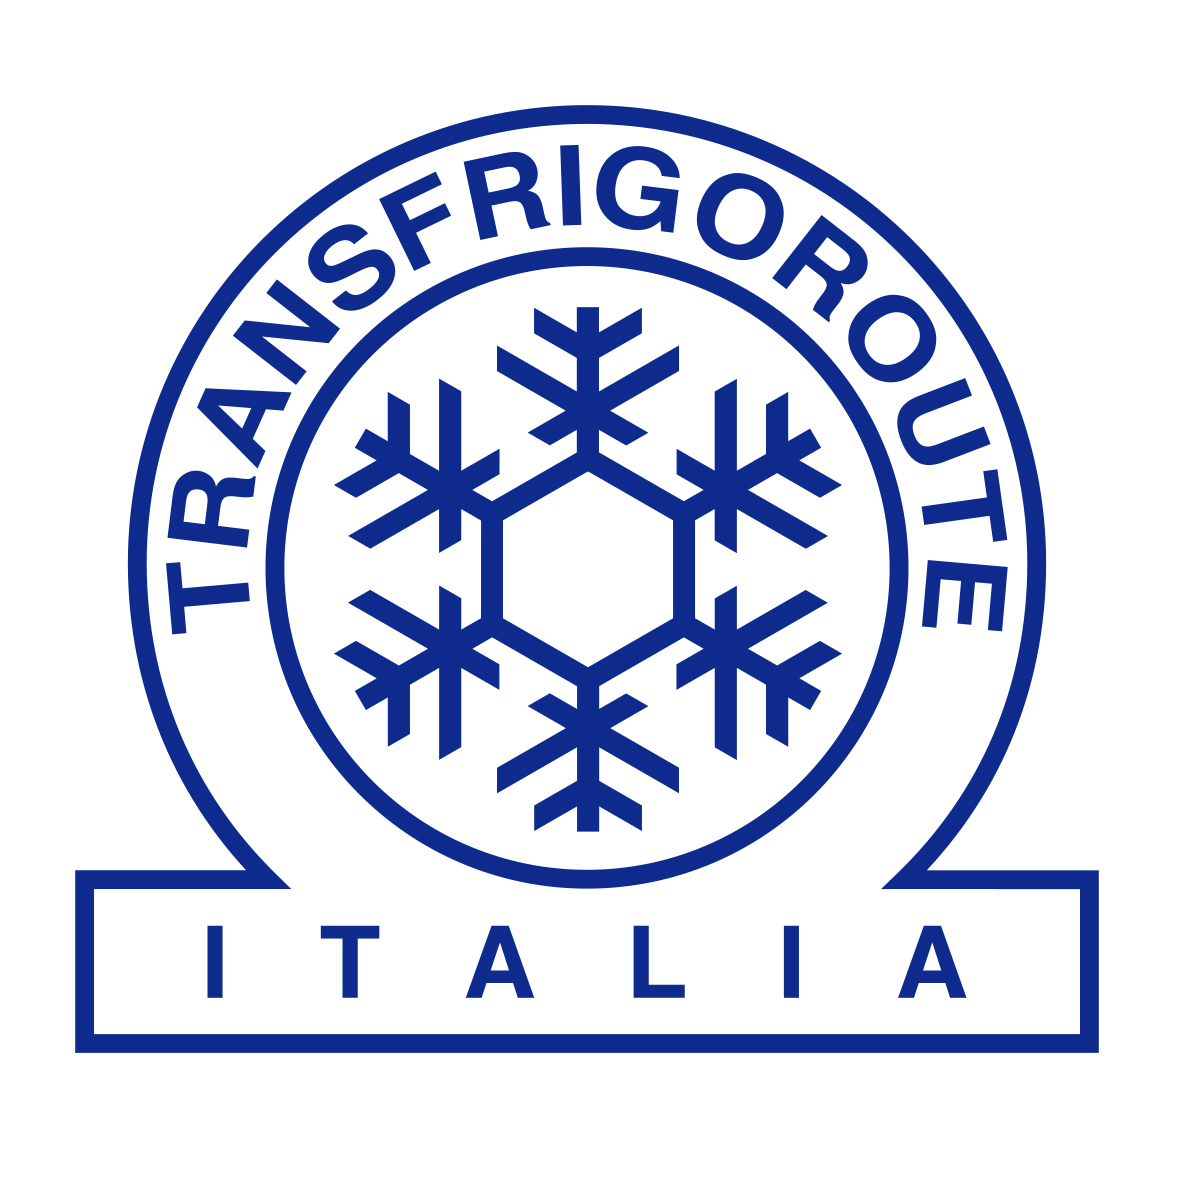 Alimentazioni alternative per veicoli refrigerati - Napoli, 26 e 27 settembre 2019 - Annual General Meeting Transfrigoroute